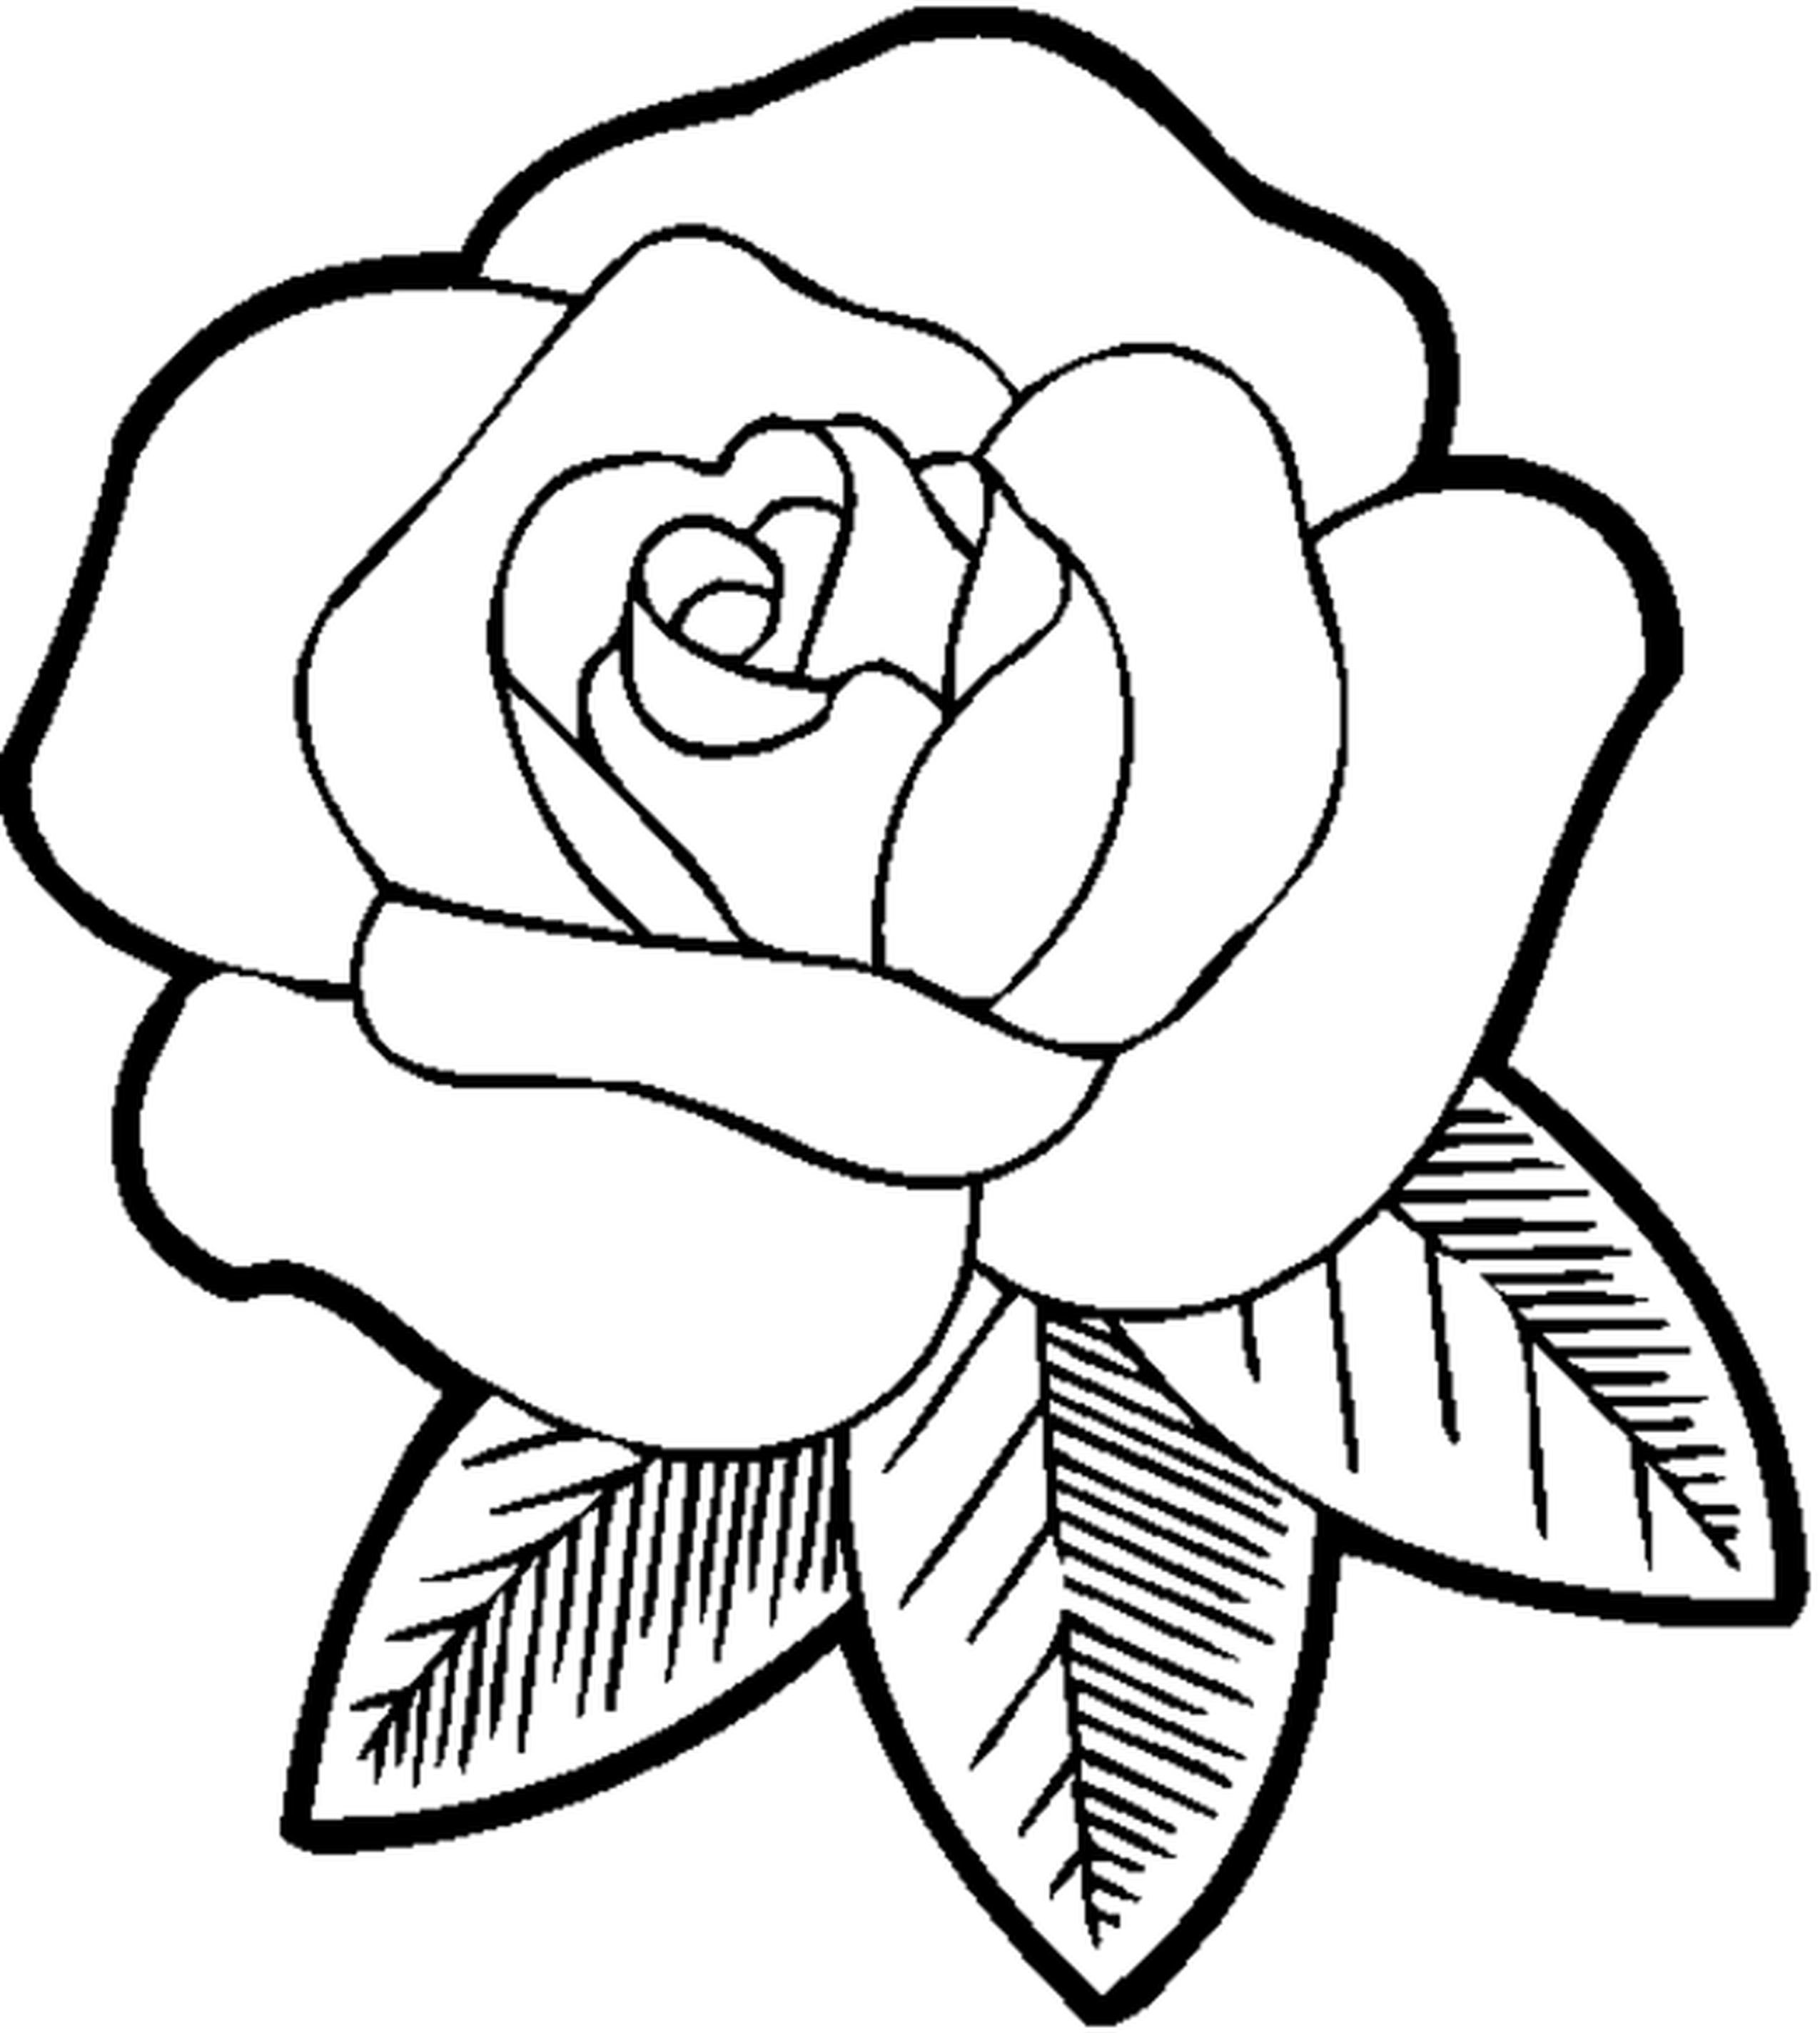 Flower Coloring Pages For Teens - Coloring Home